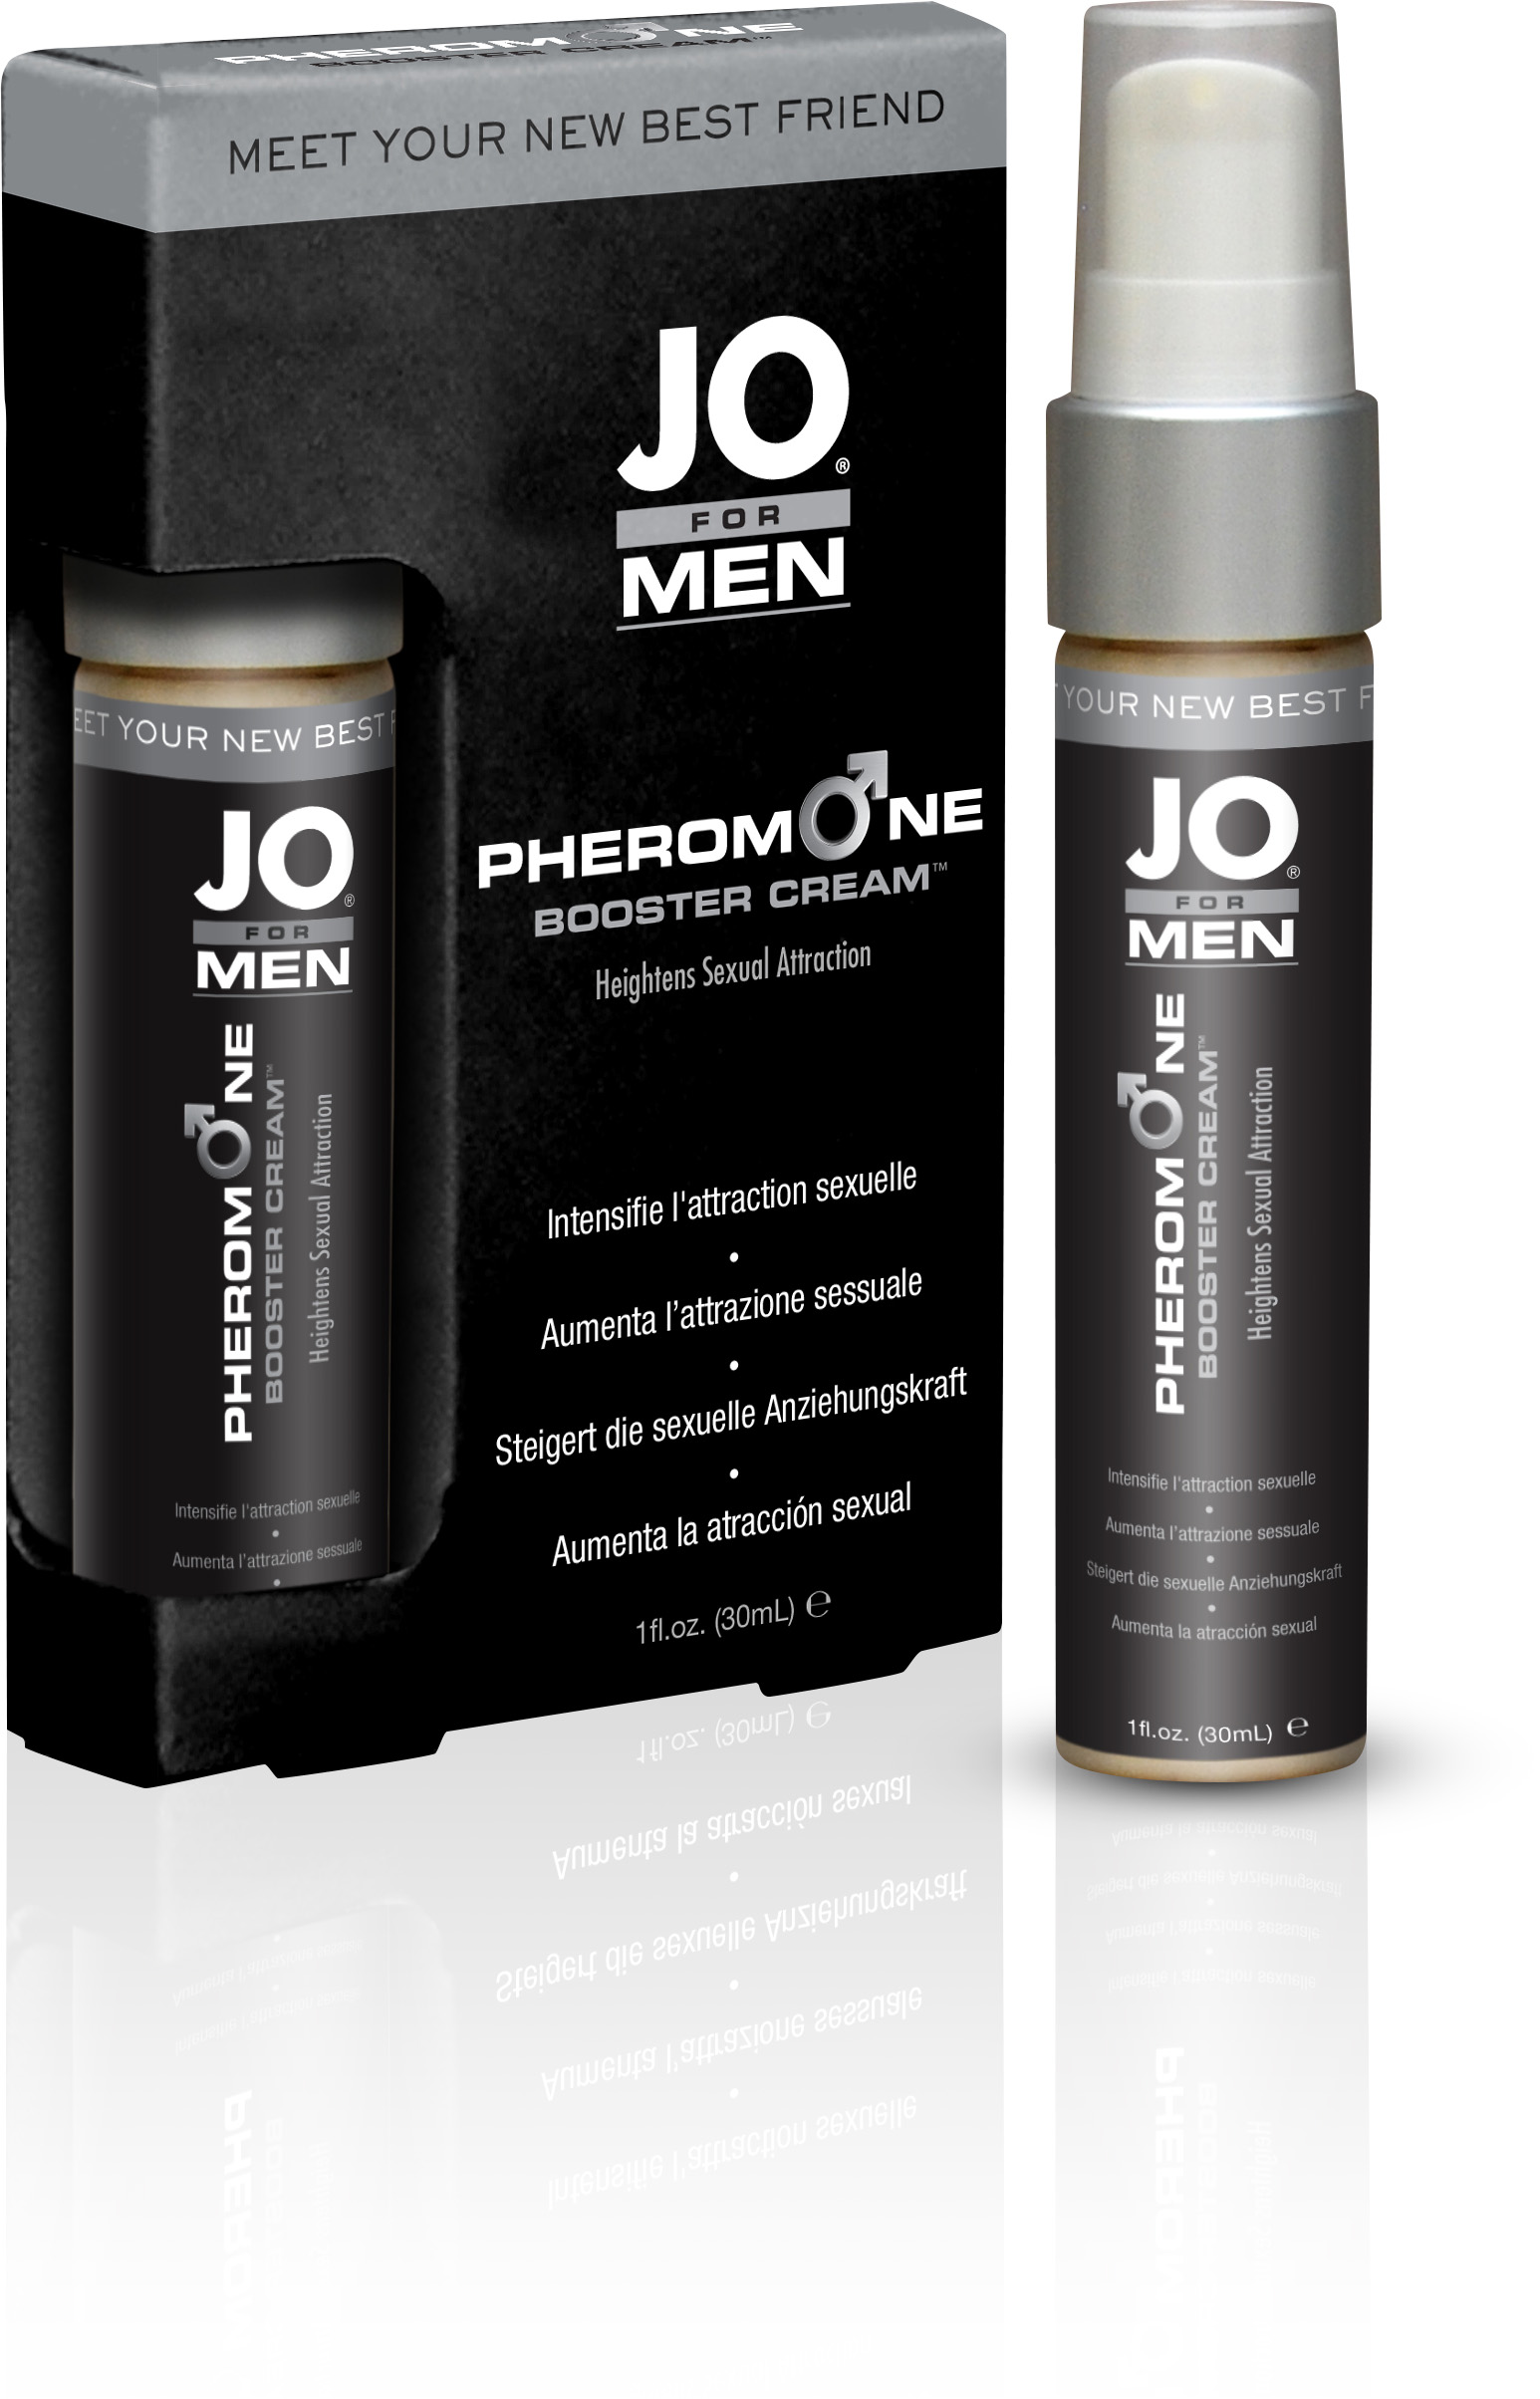 JO FOR MEN PHEROMONE BOOSTER